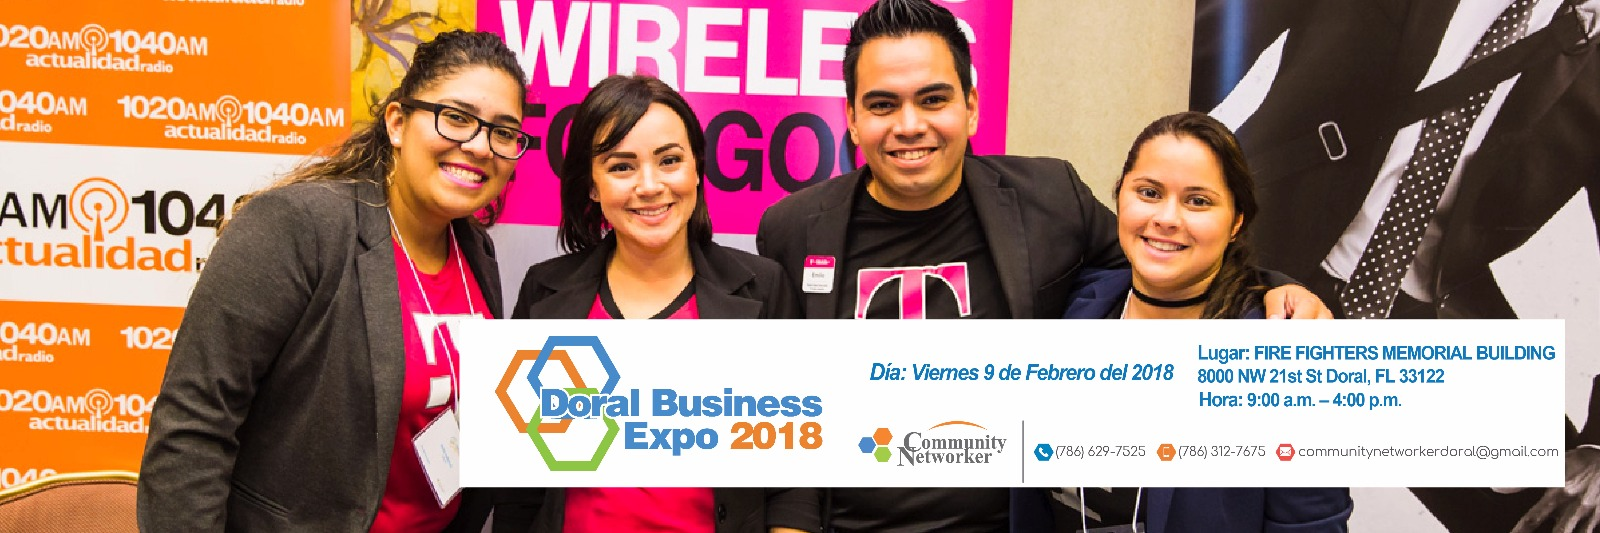 Doral Business Expo 2018